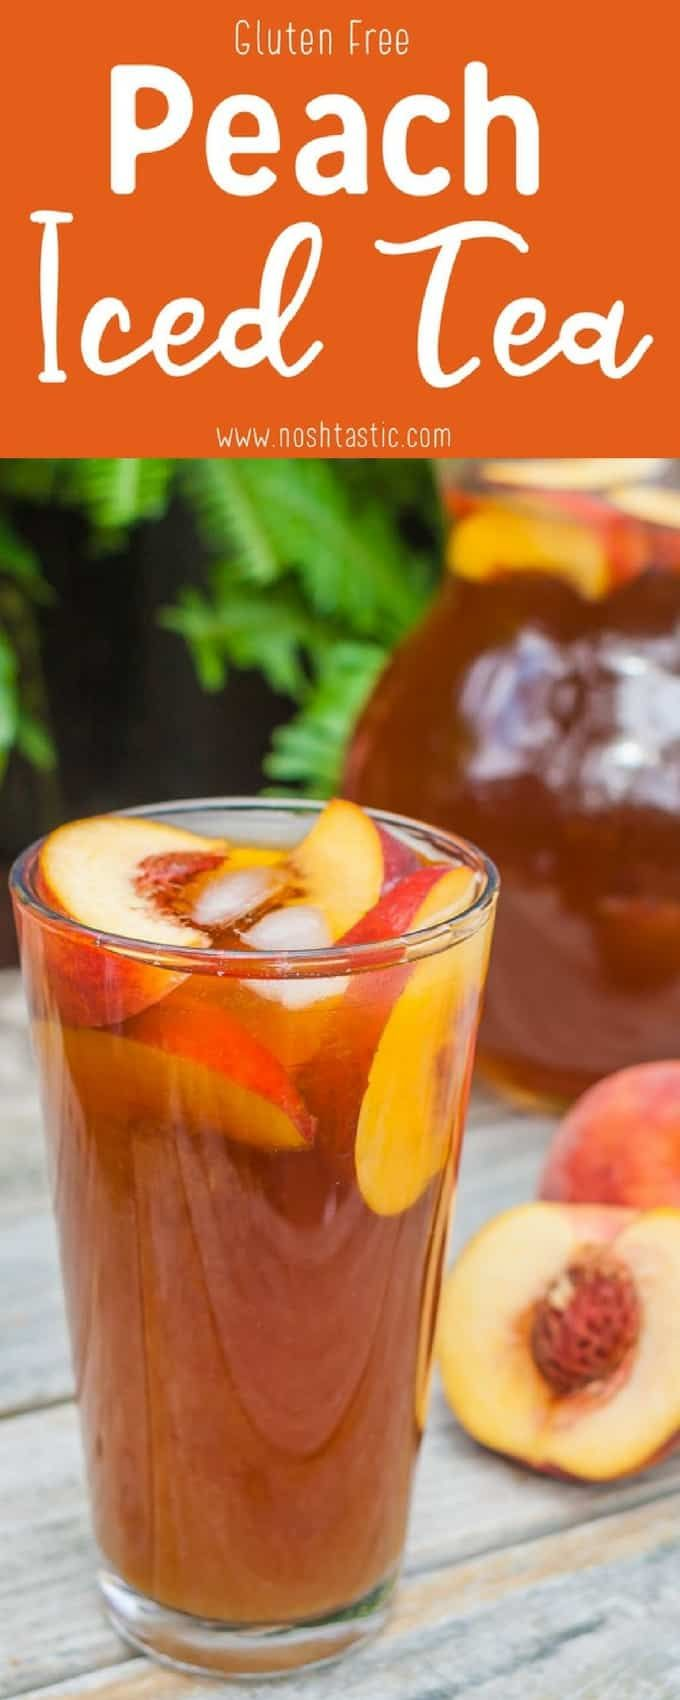 It's so simple and easy to make, Peach Iced Tea recipe made with real peache…